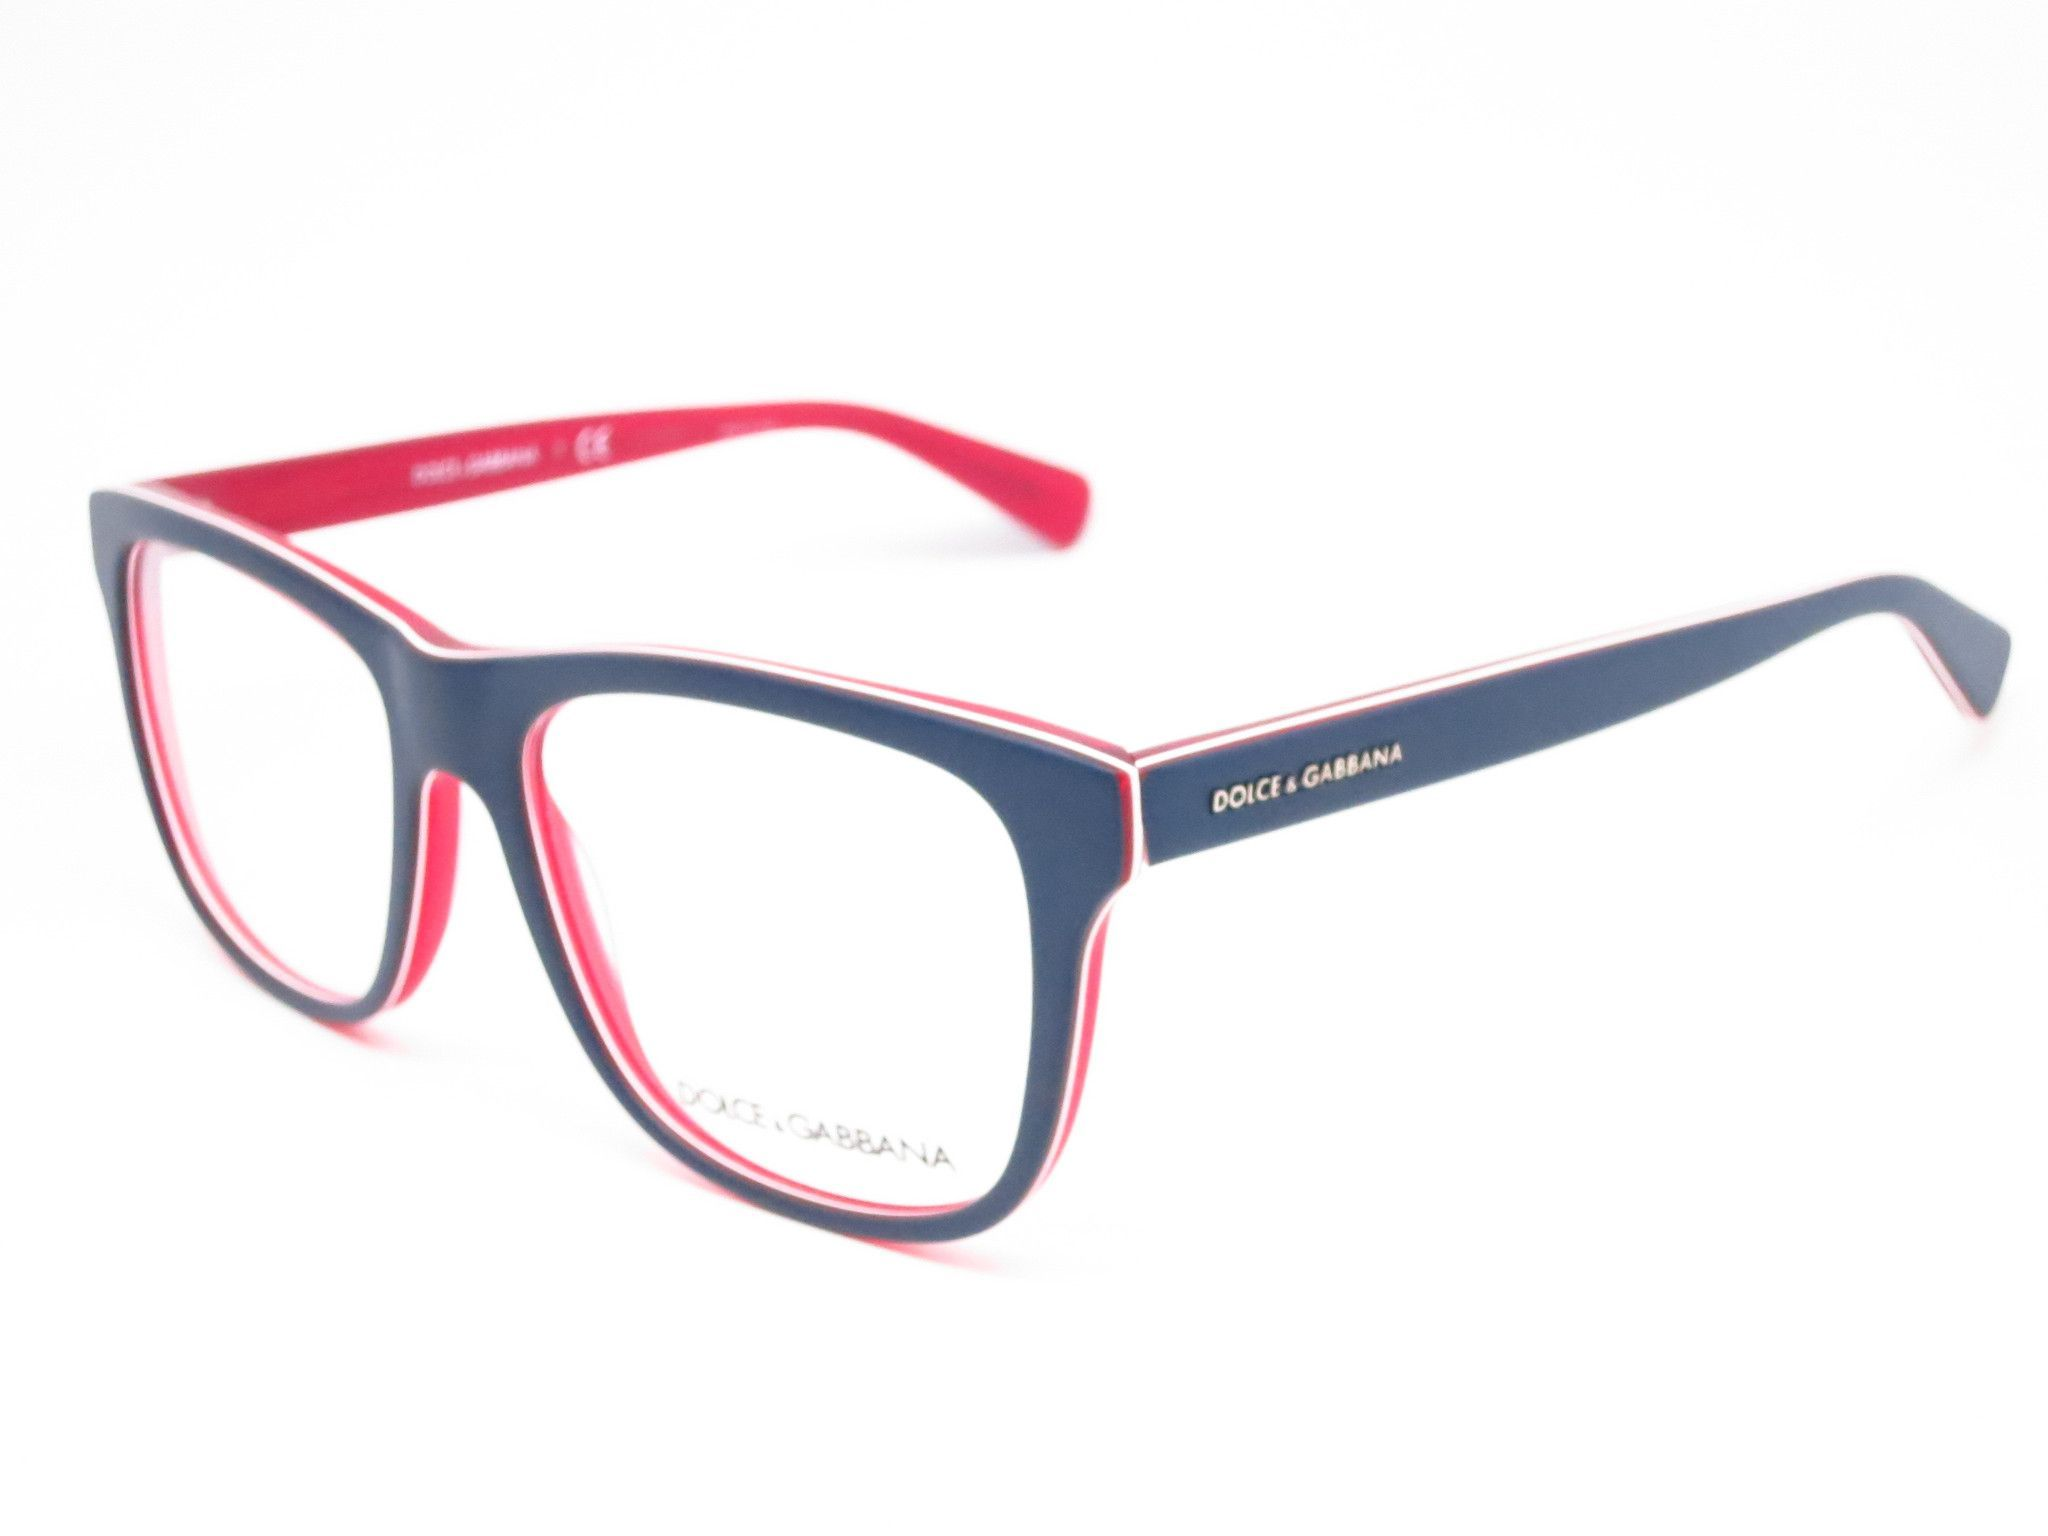 6684a9073169 Dolce   Gabbana DG 3206 Product Details Brand Name   Dolce   Gabbana Model  Number   DG 3206 - Color Code   1872 Frame Color   Top Blue on Matte Red  Lens ...